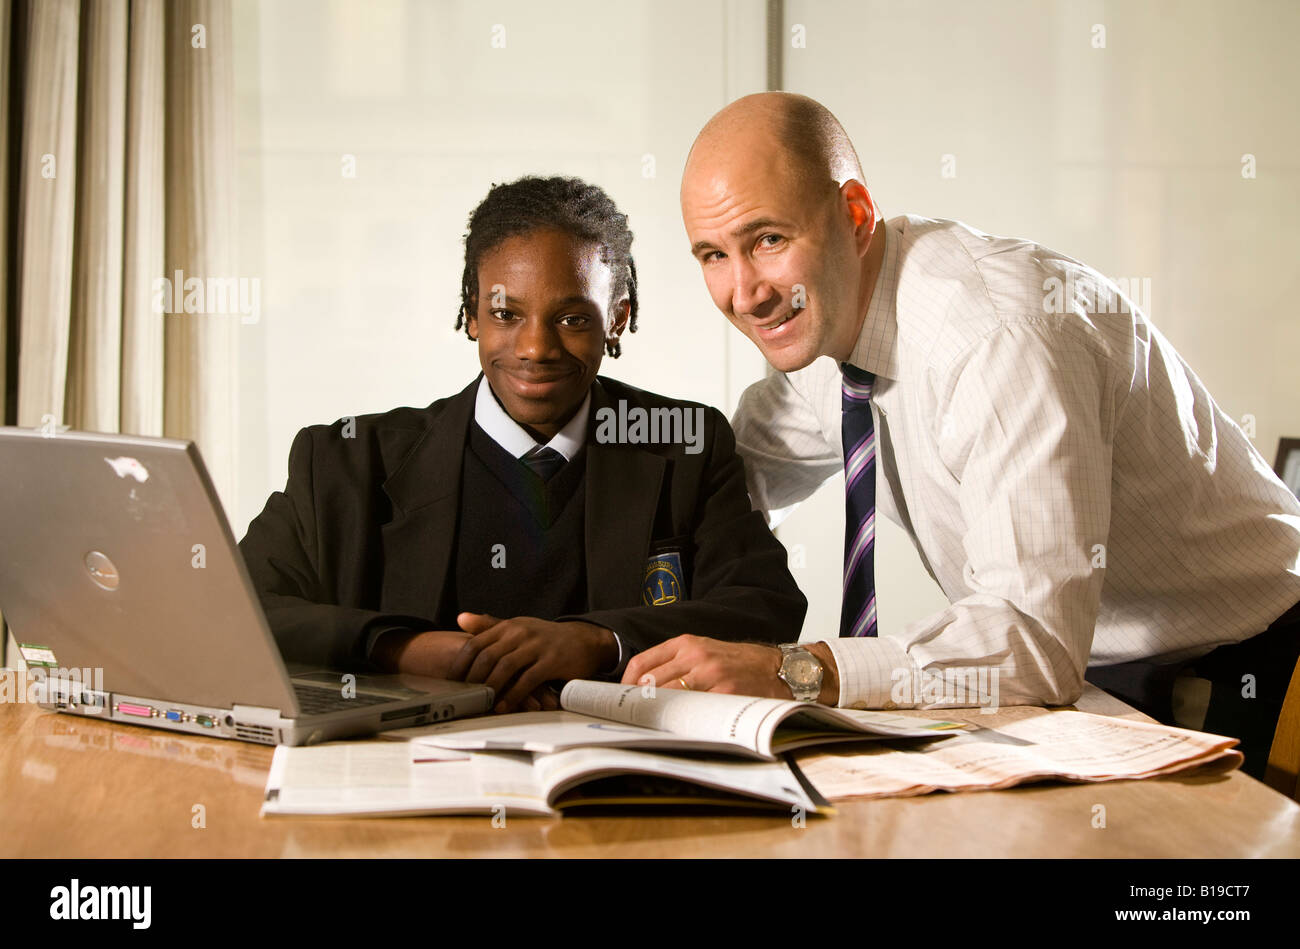 mentoring mentor banking work experence stock photo royalty mentoring mentor banking work experence